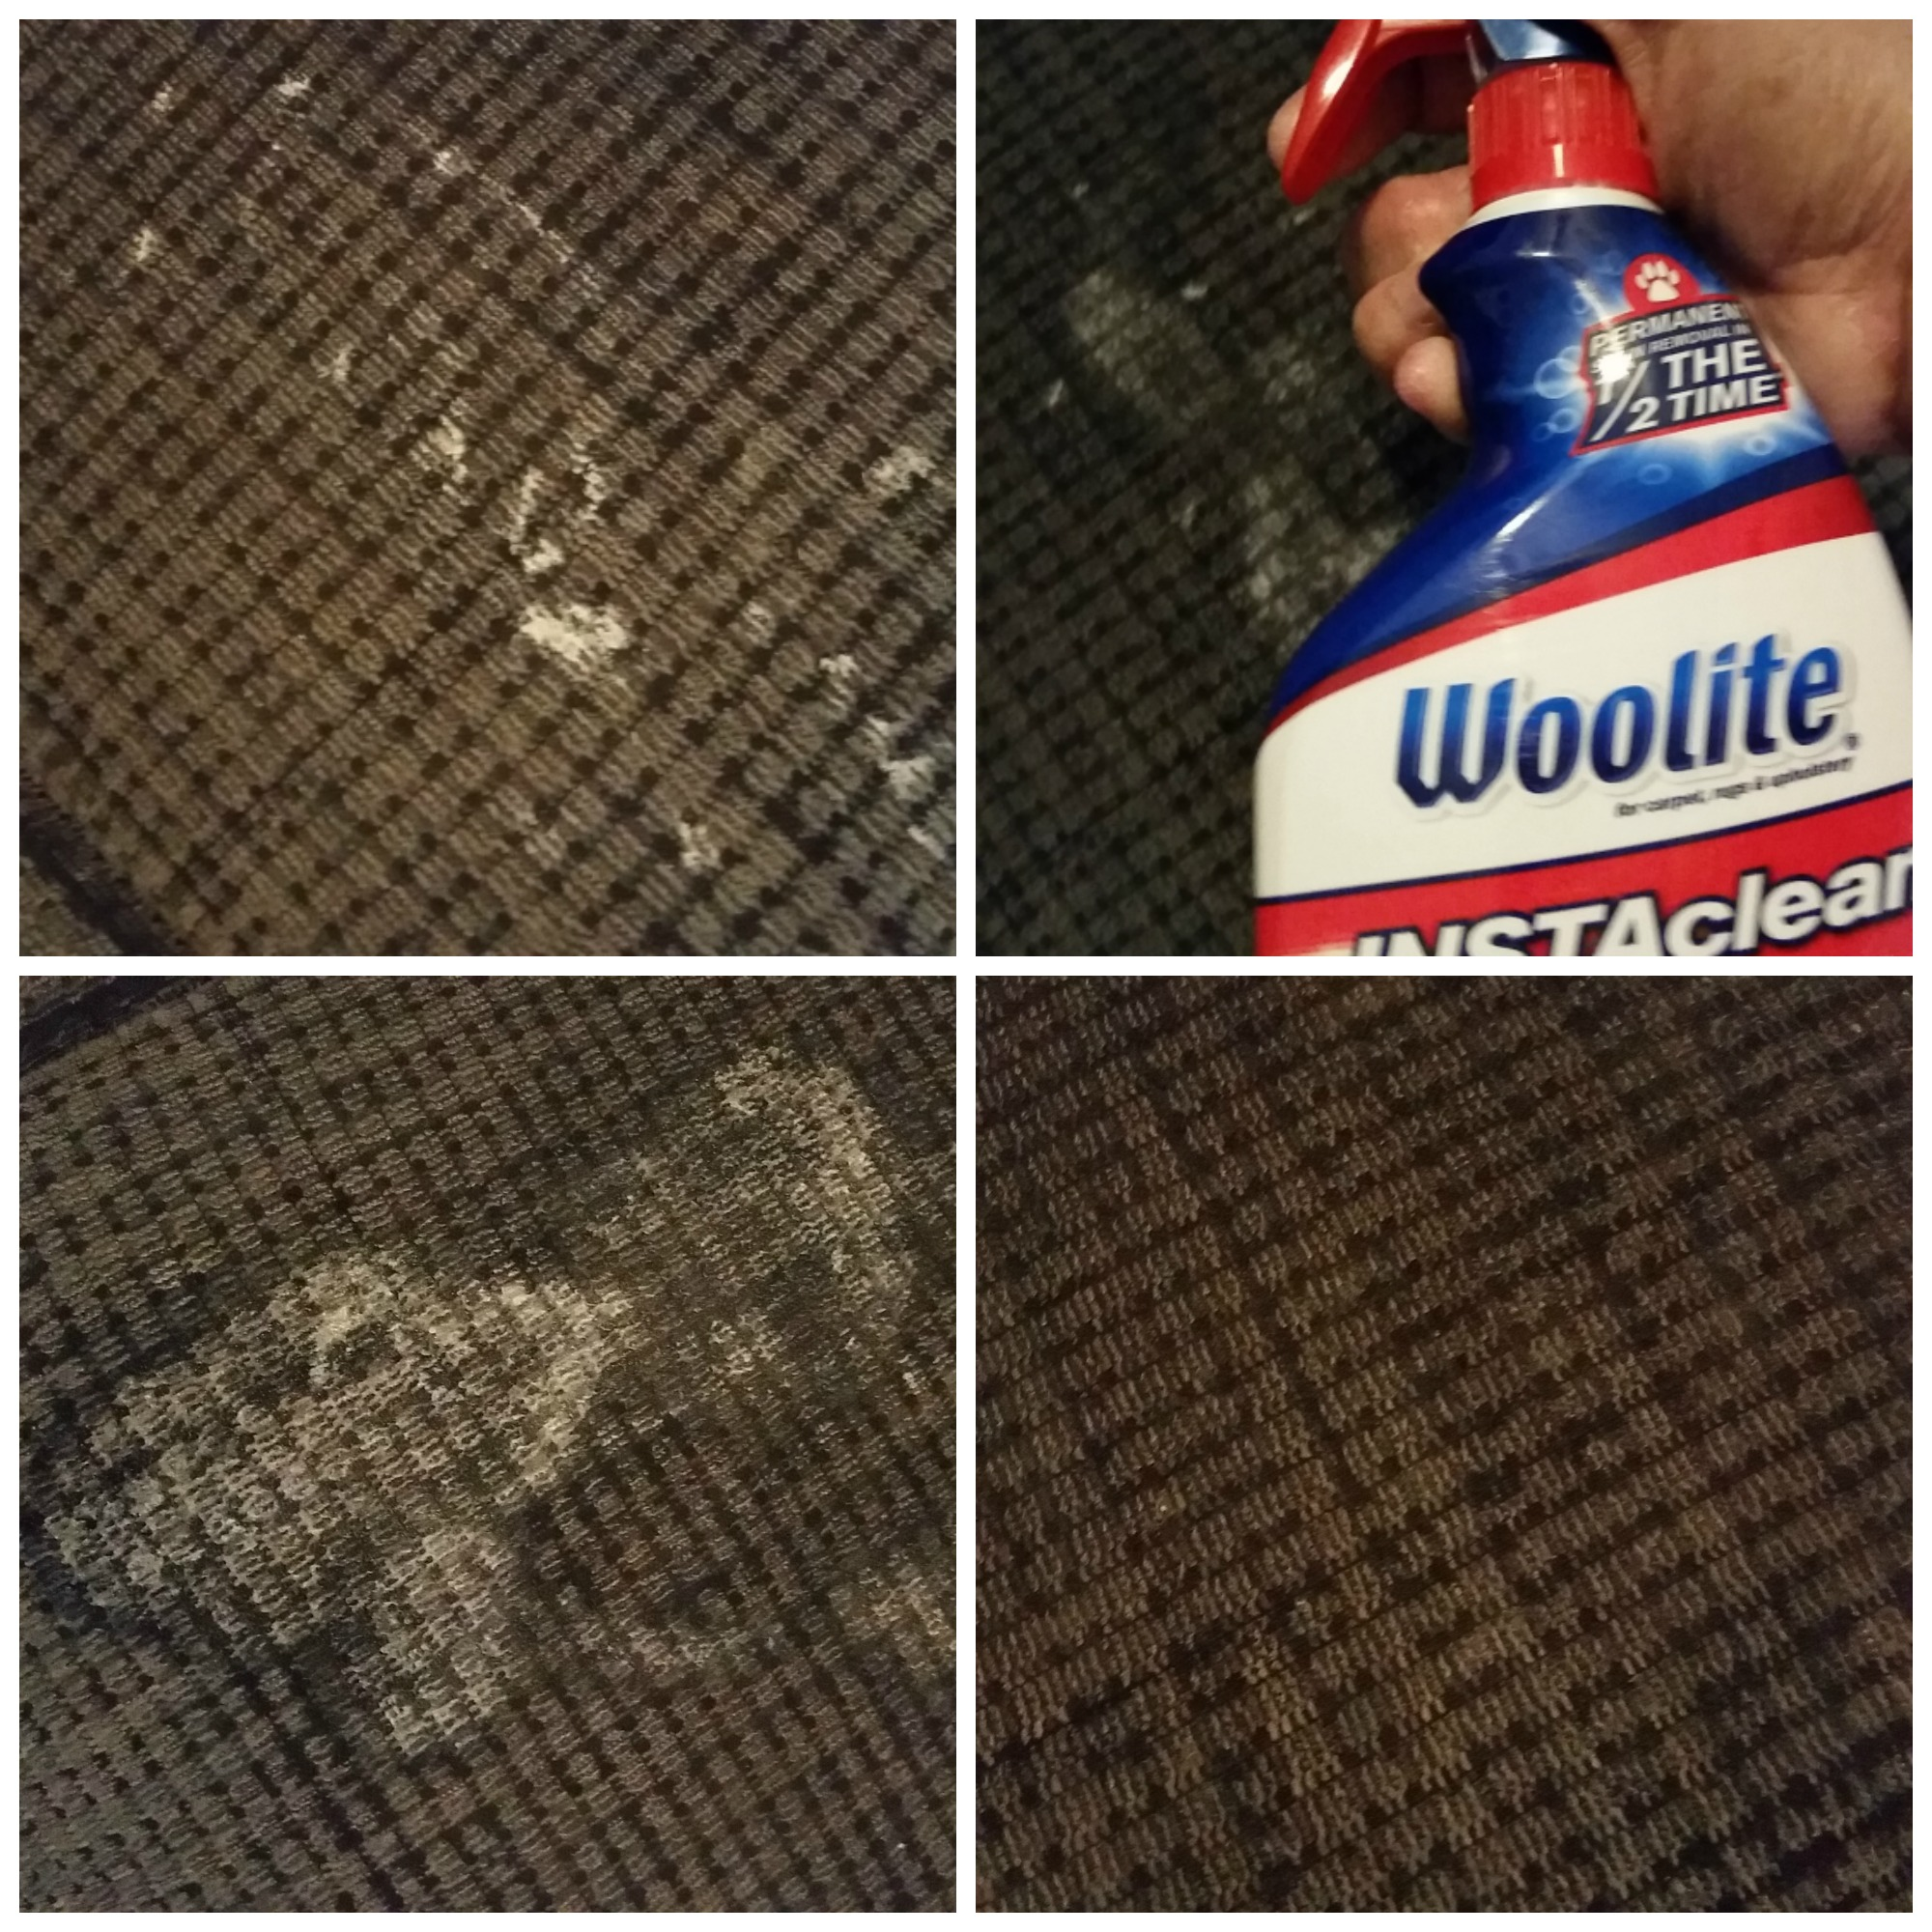 Couch stain before and after Woolite INSTAclean